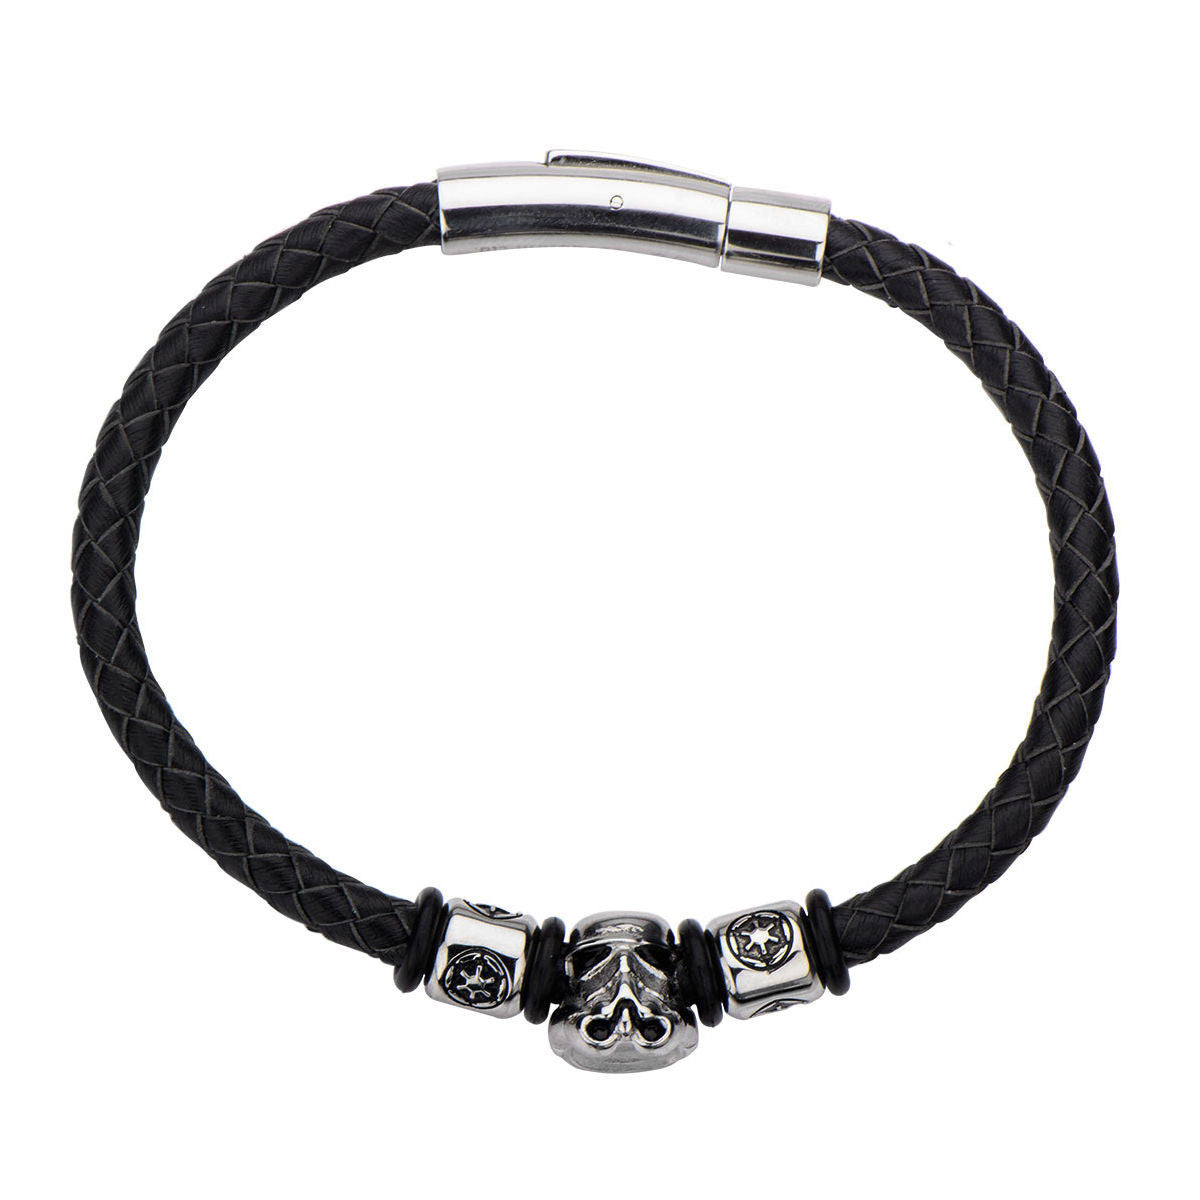 Star wars stormtrooper galactic empire symbol braided leather star wars stormtrooper galactic empire symbol braided leather bracelet steel 1000jewels biocorpaavc Images